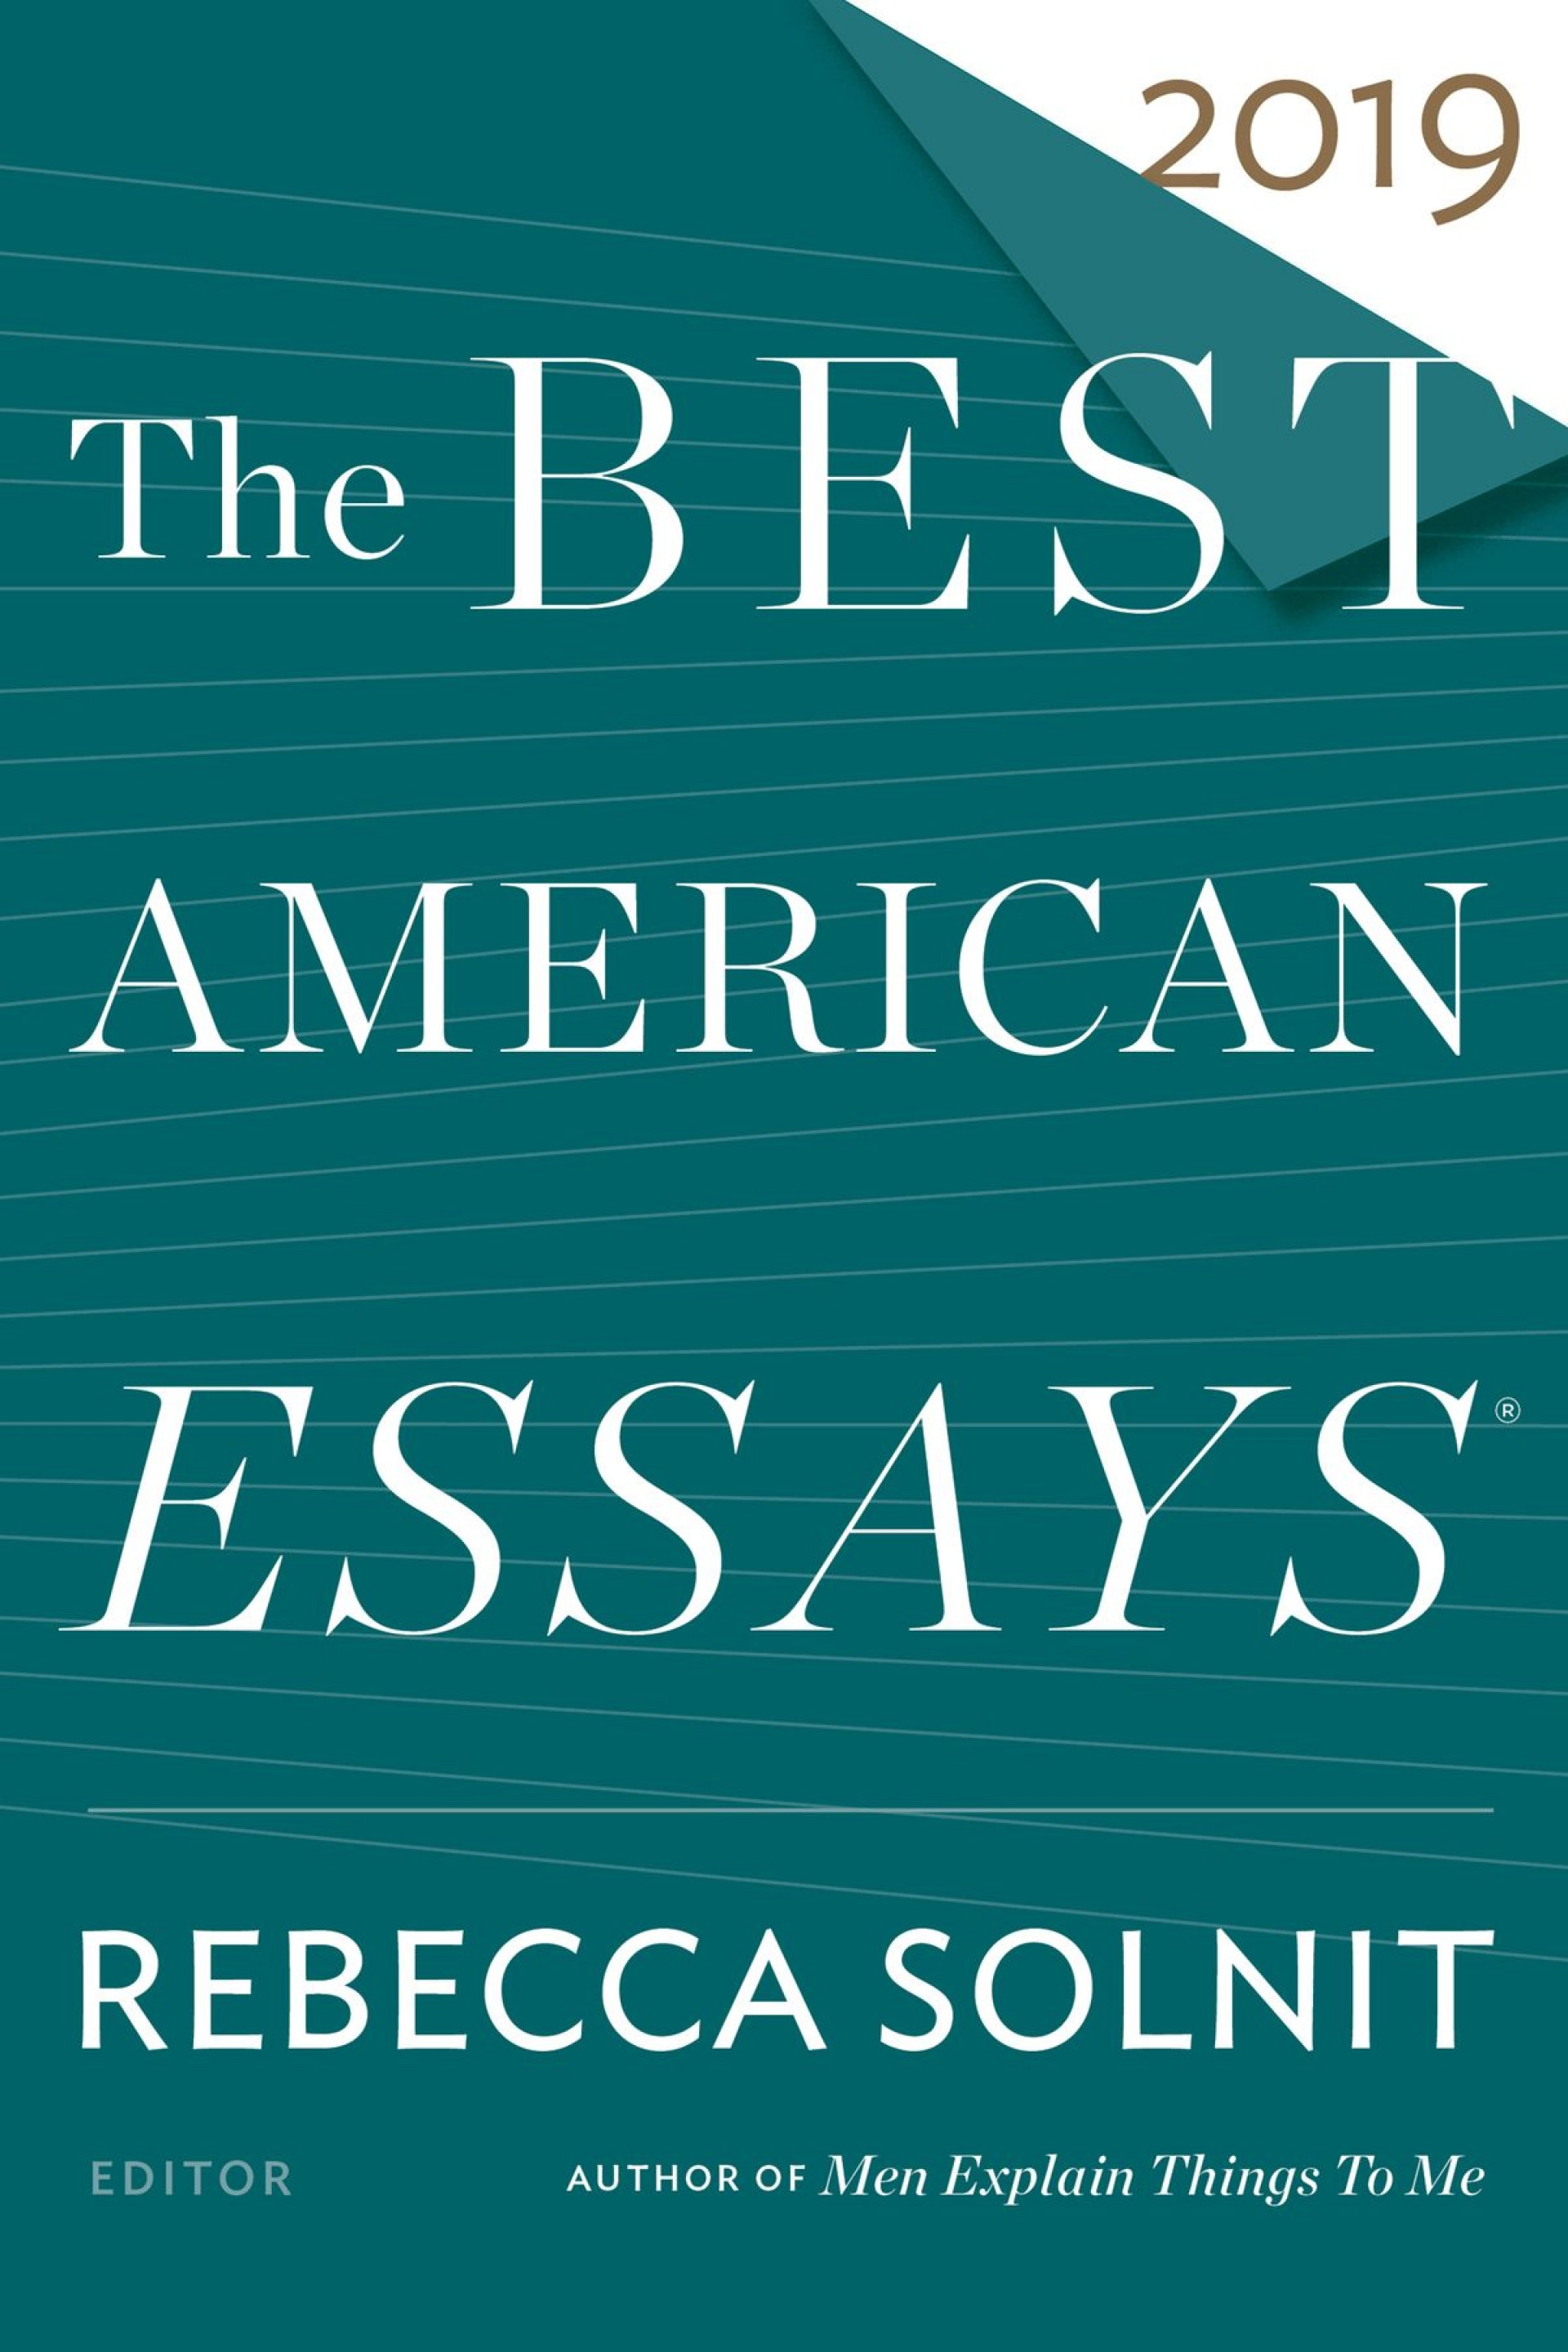 007 The Best American Essays Essay Wonderful Of Century Table Contents 2013 Pdf Download 1920